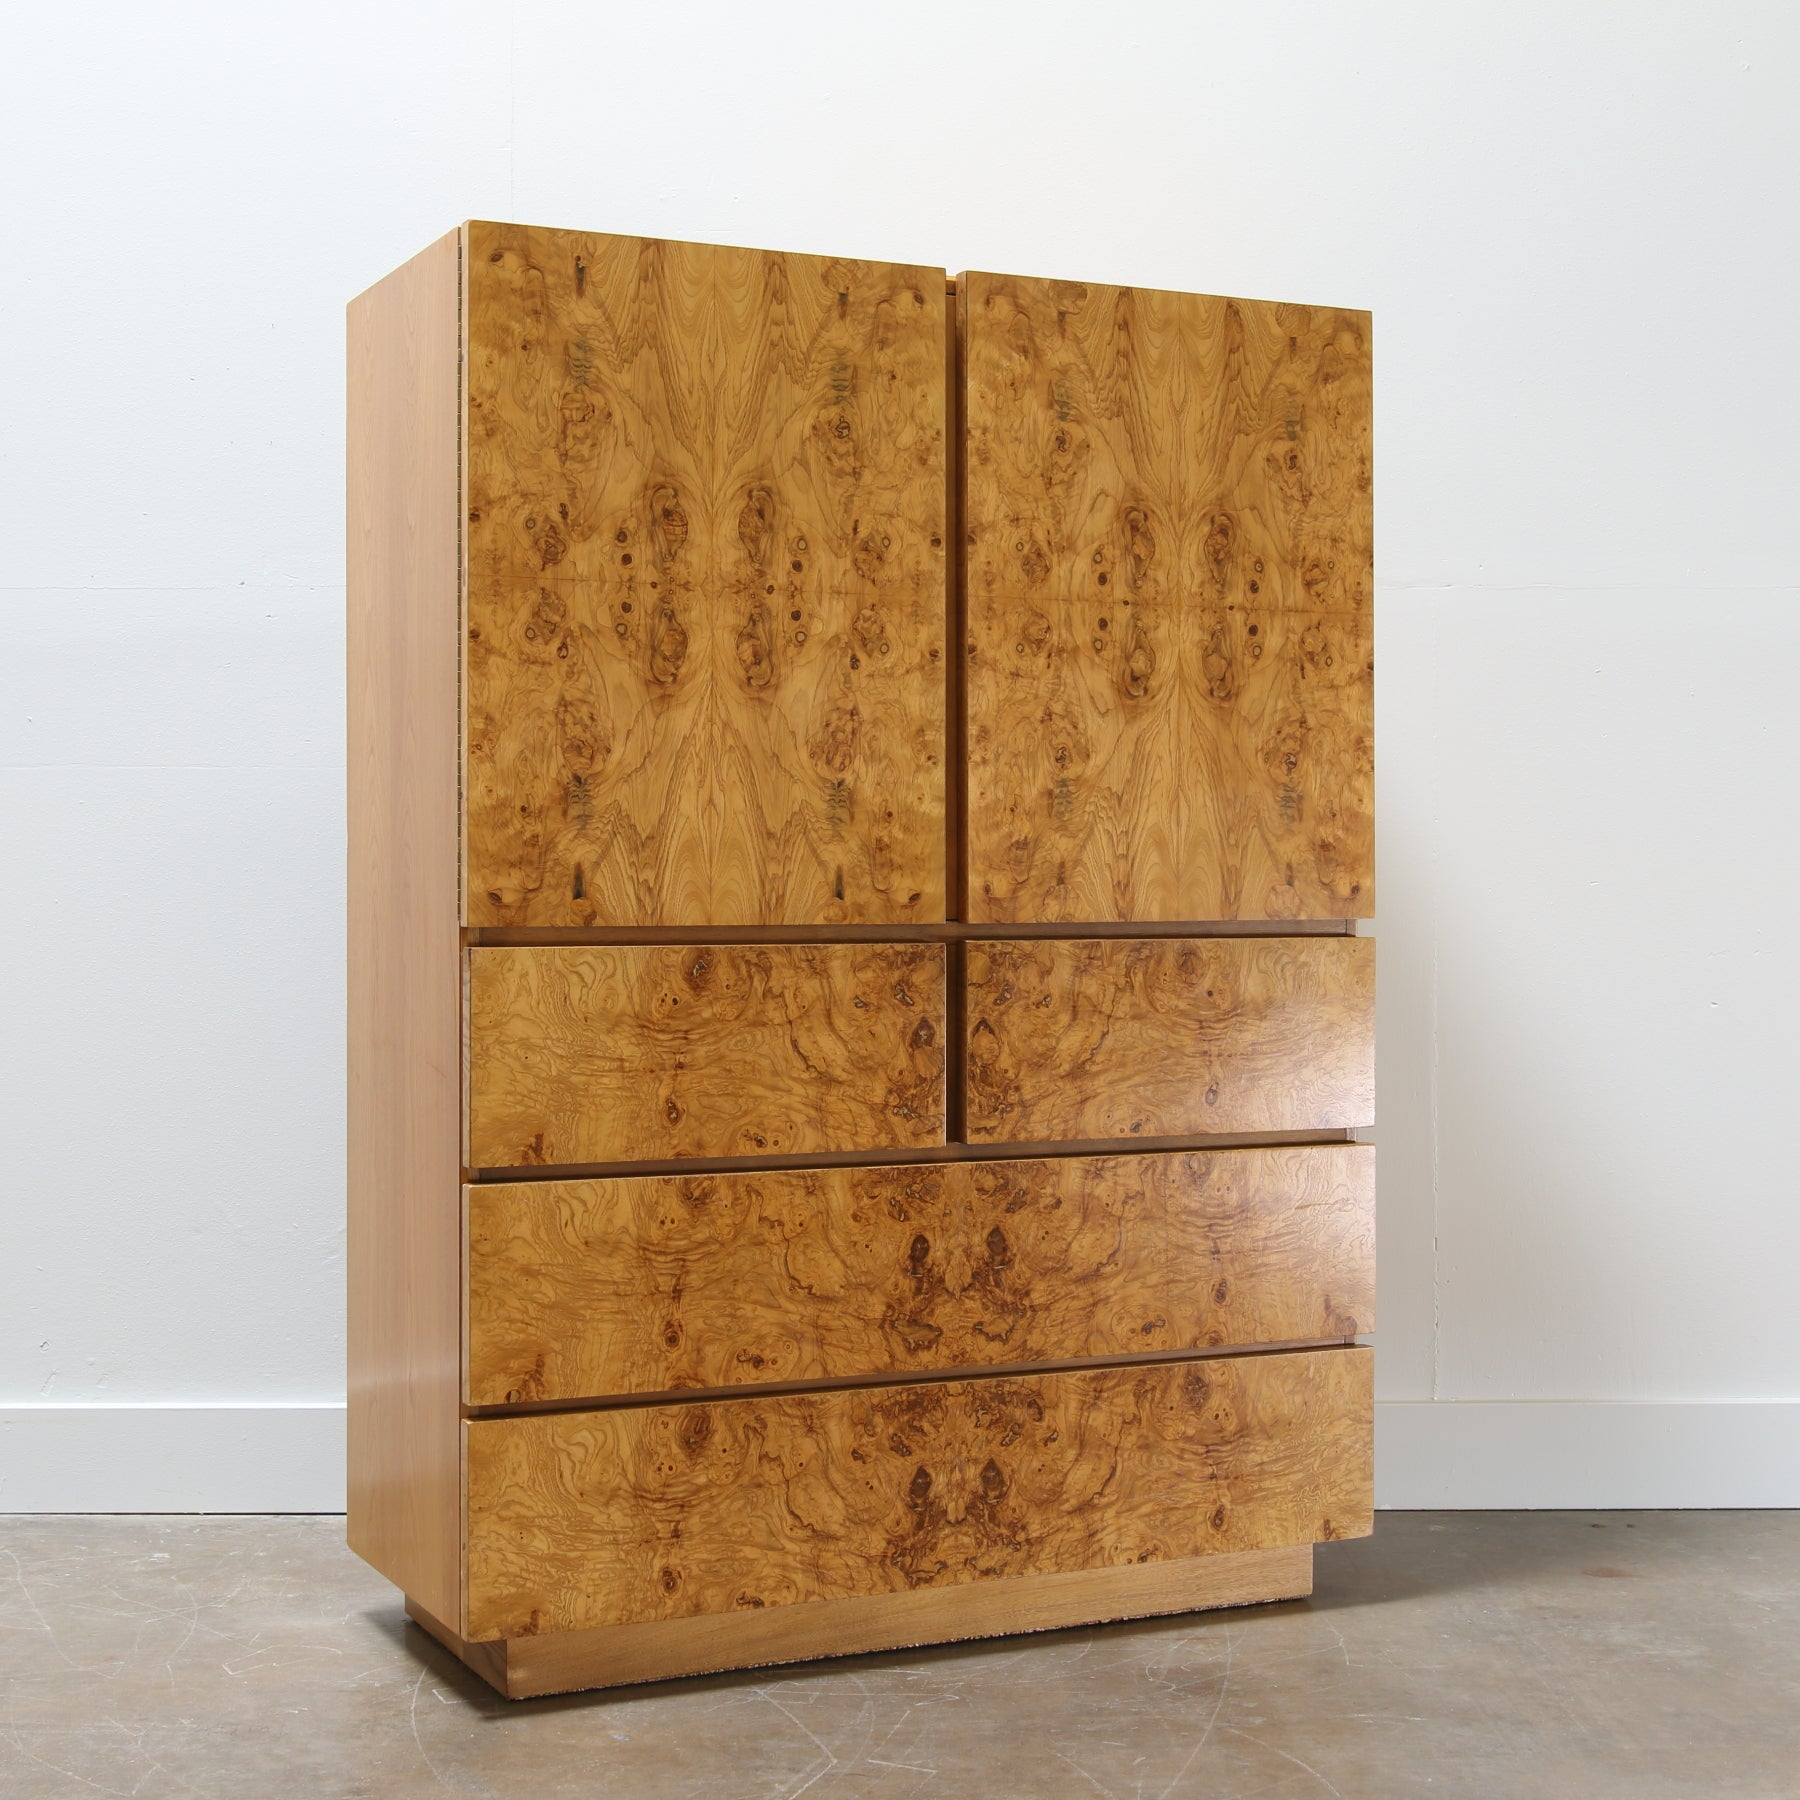 Beau Burl Wood Chest By Roland Carter For Lane Furniture